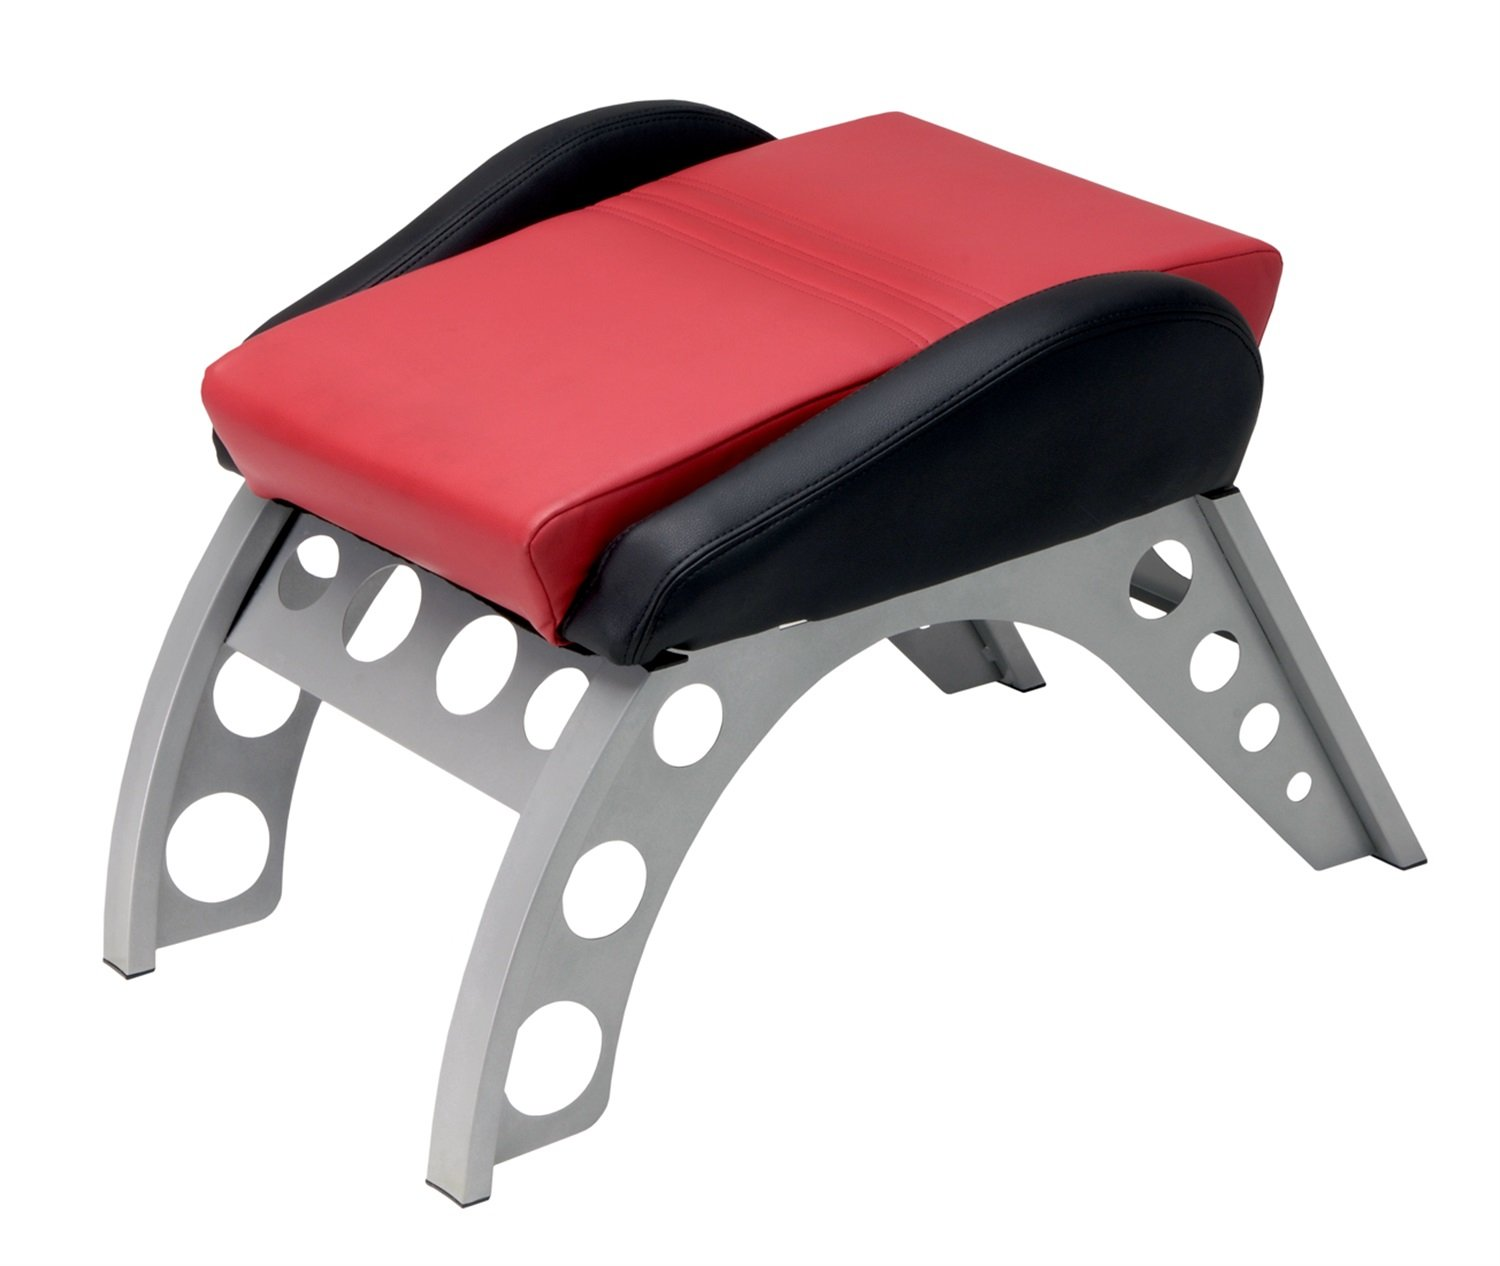 Pitstop Furniture FR3000R Red GT Receiver Foot Rest by Pitstop Furniture